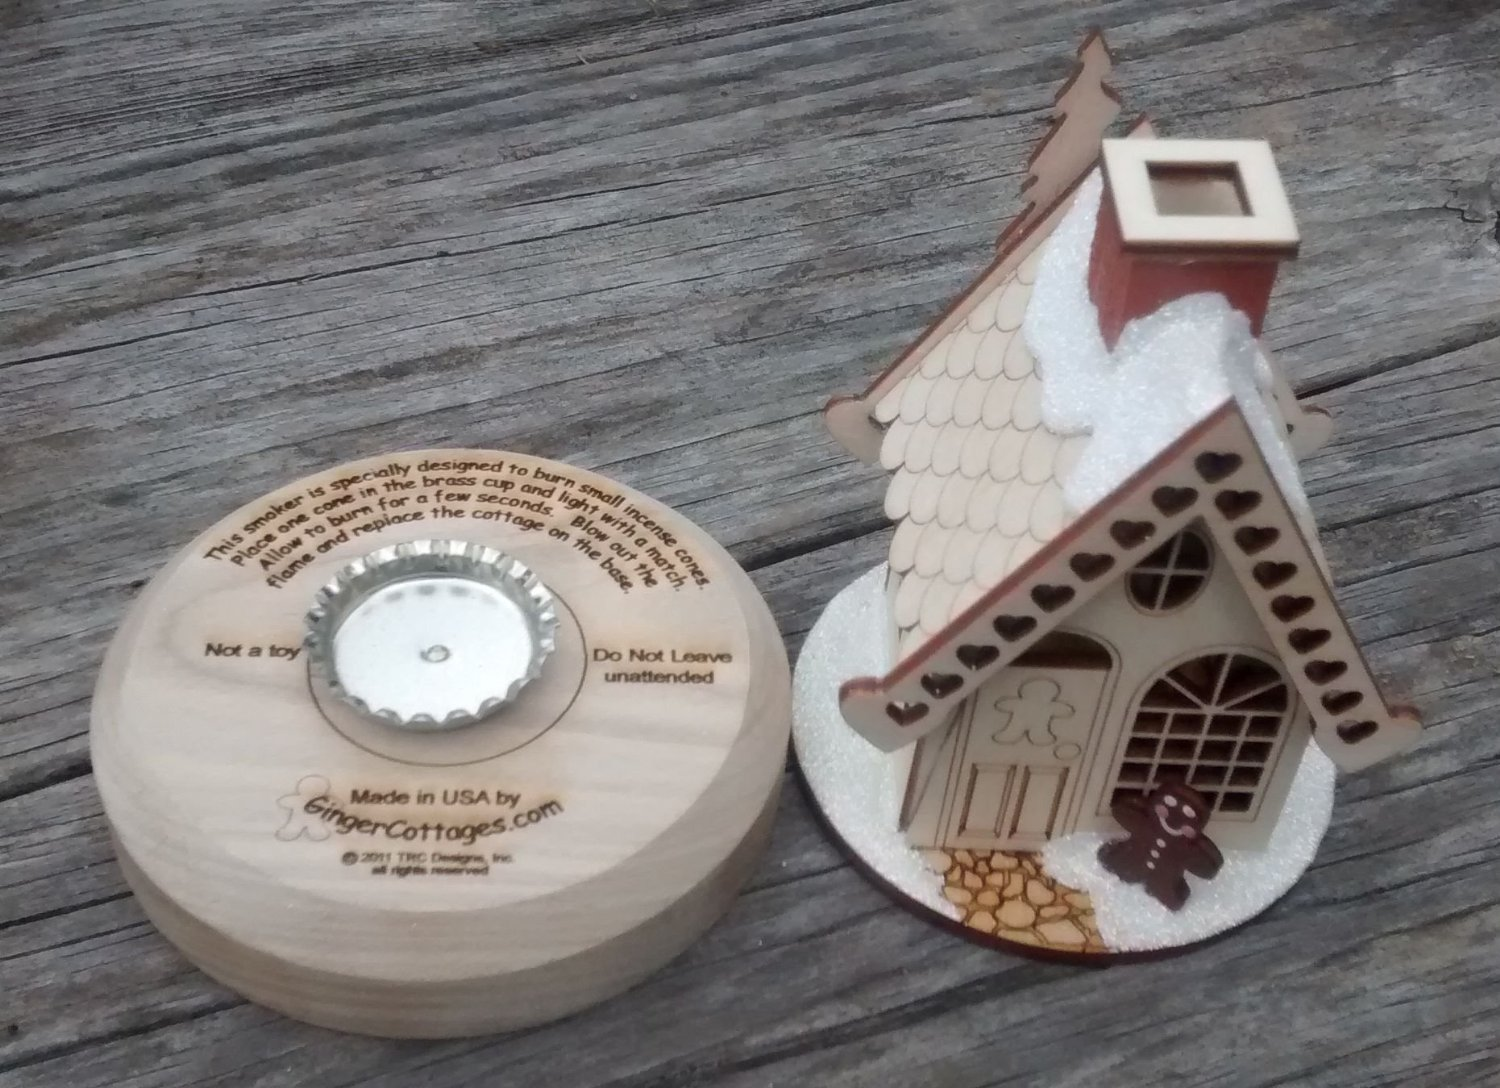 Ginger Cottage Incense Smoker